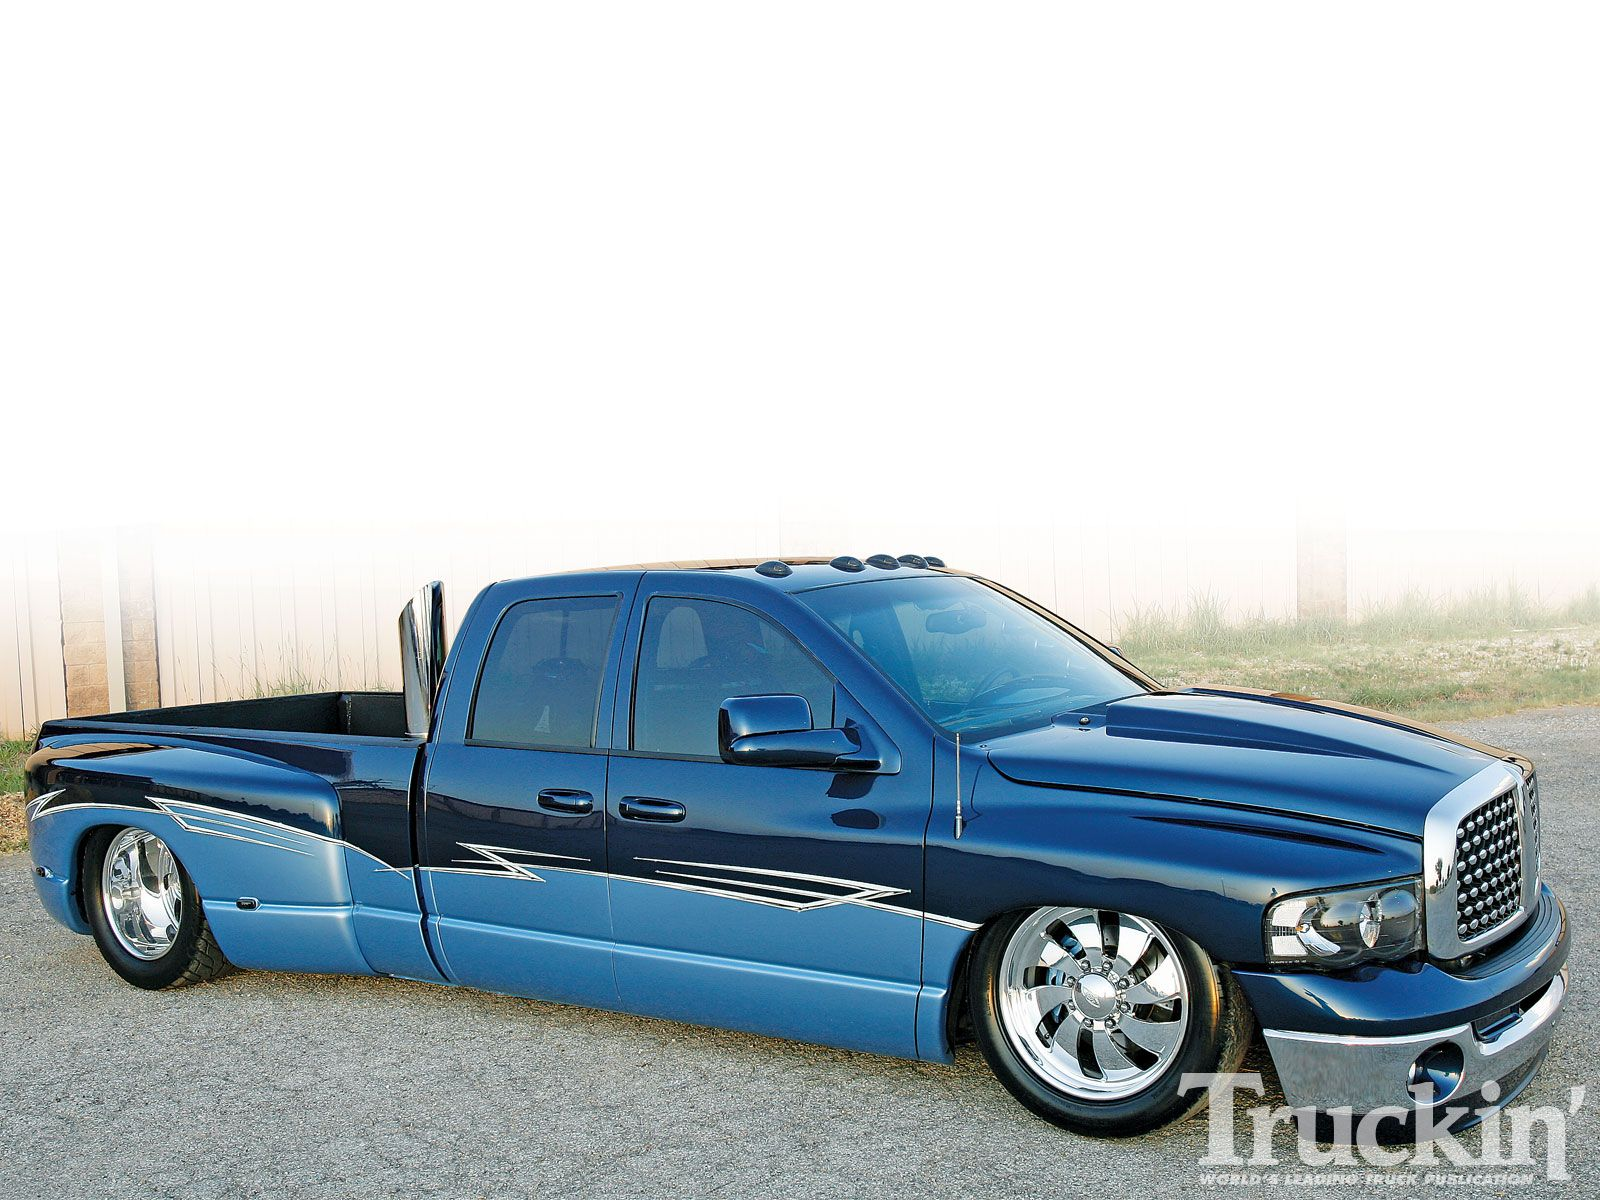 2005 dodge ram 3500 custom two tone paint job photo 2